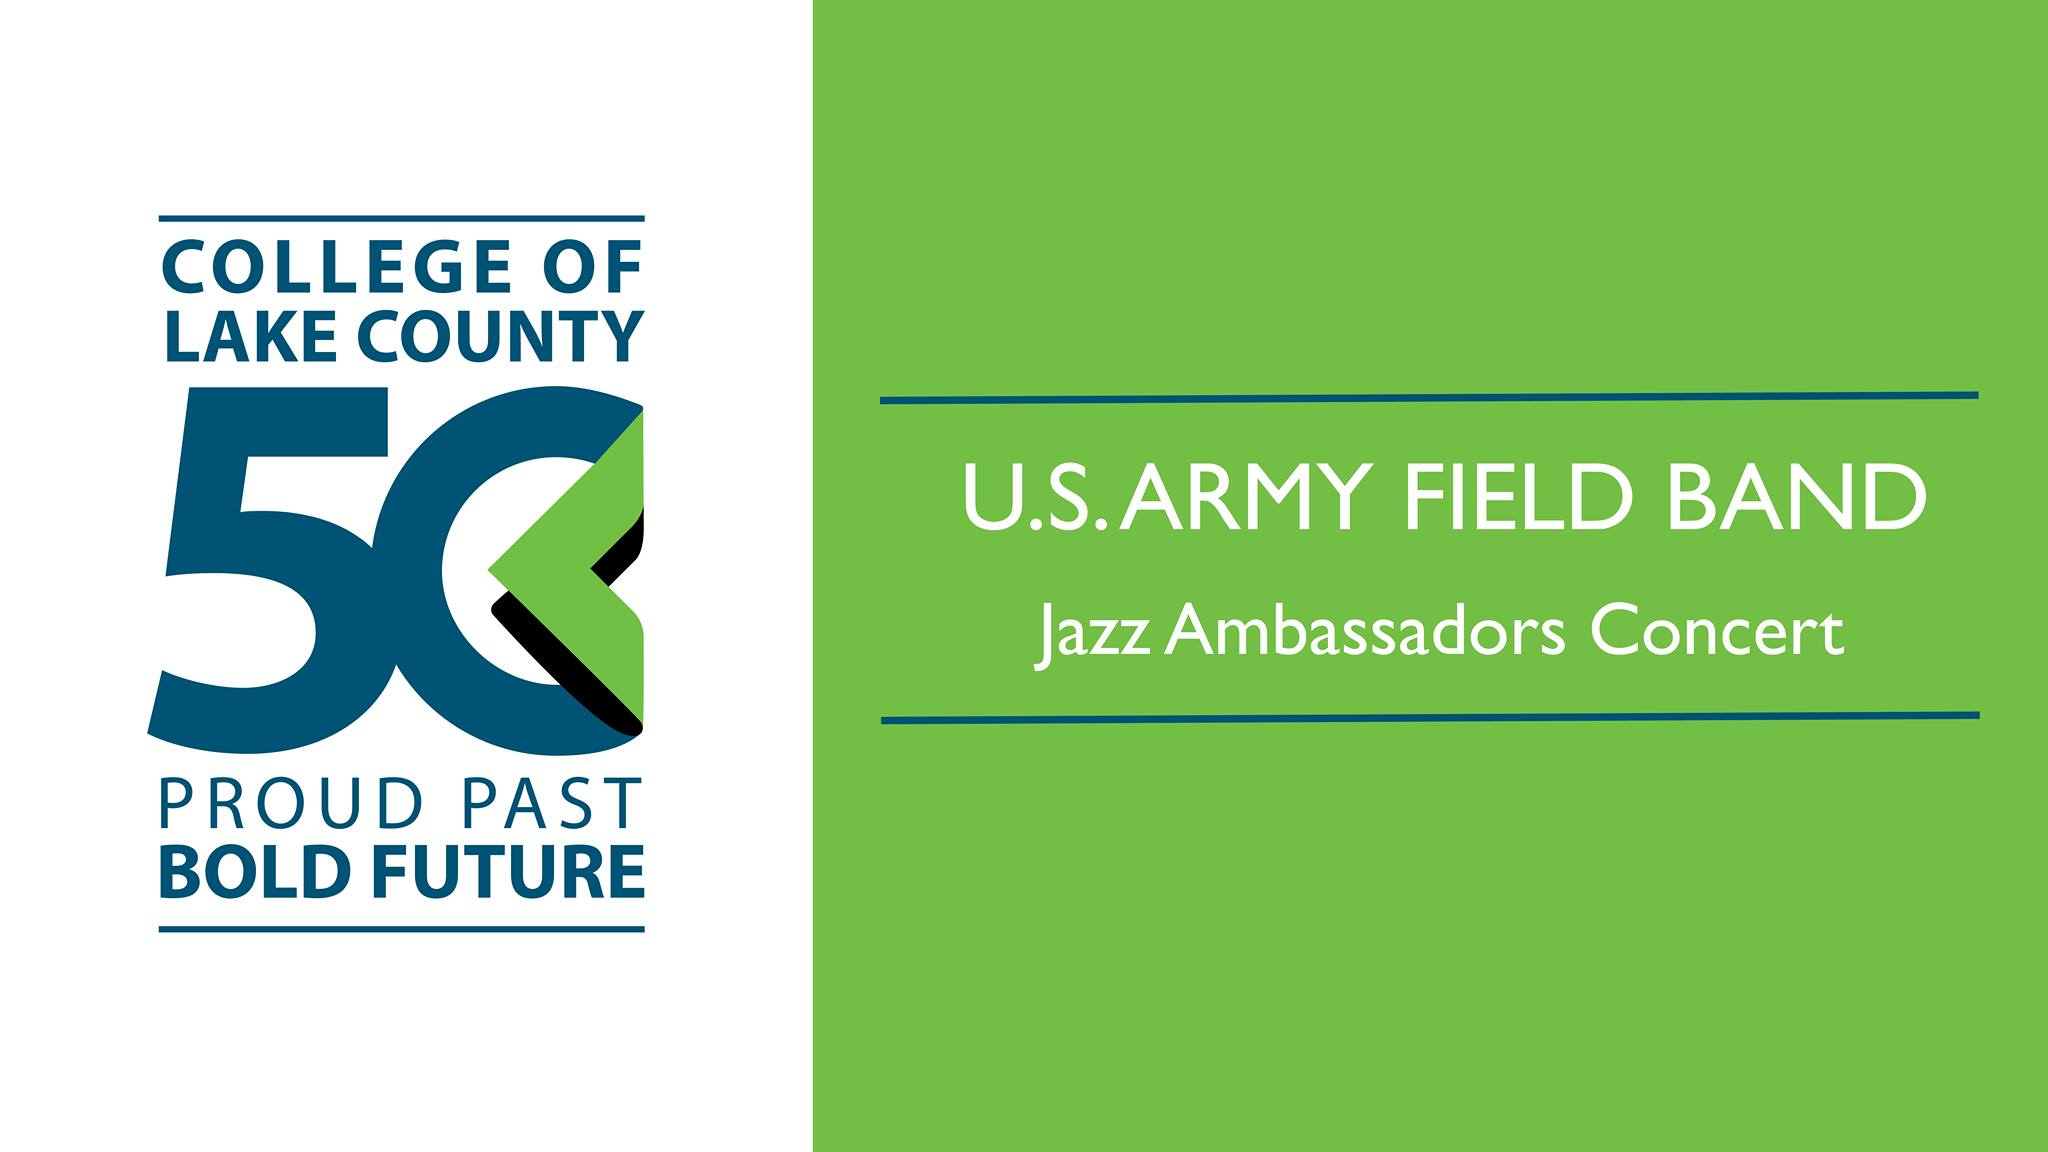 The U.S. Army Field Band's Jazz Ambassadors Concert at College of Lake County